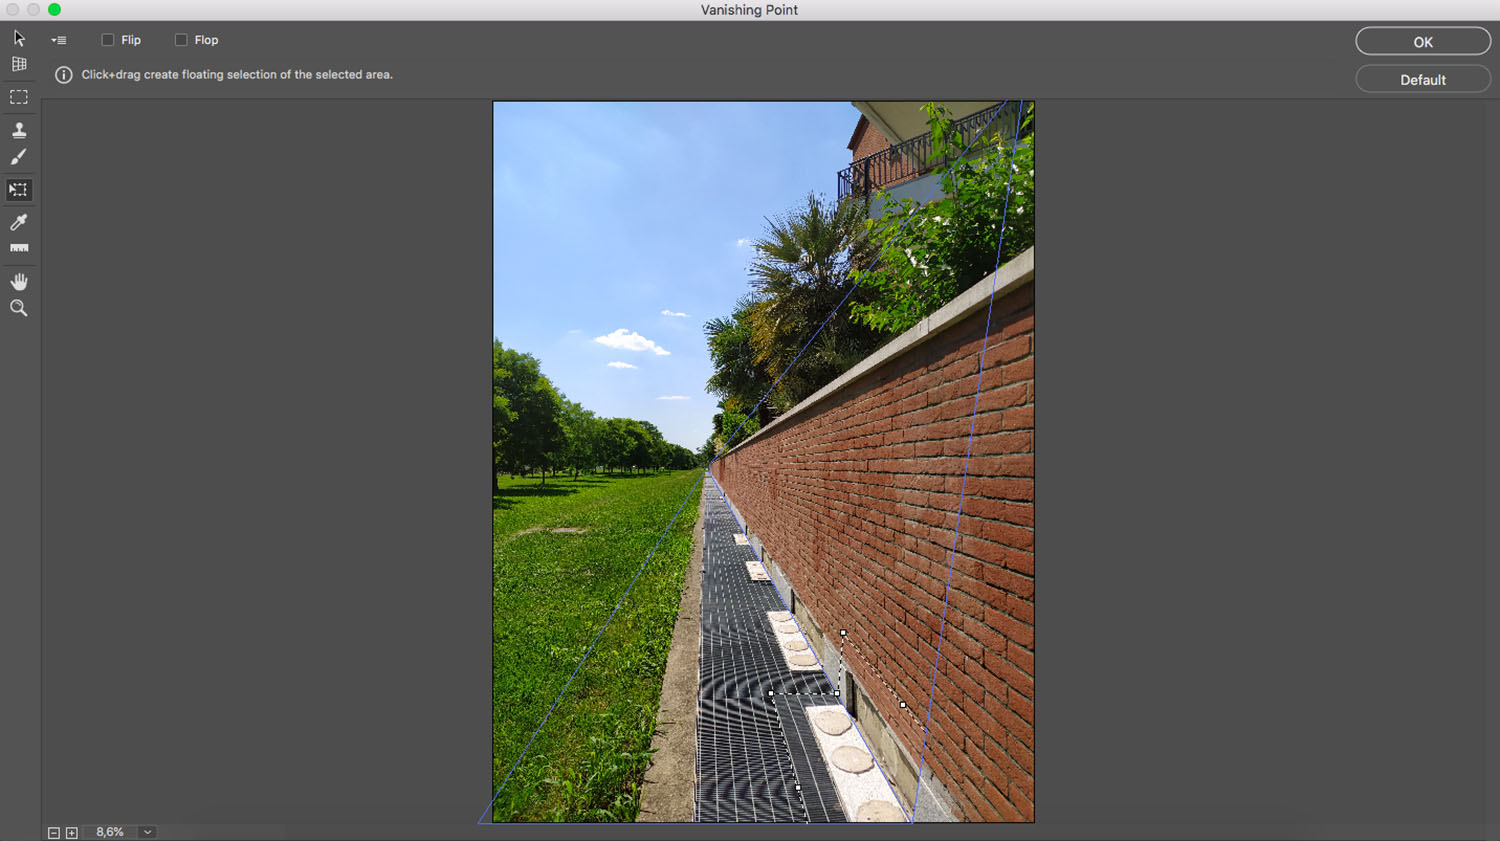 Select and Duplicate in Vanishing Point in Photoshop